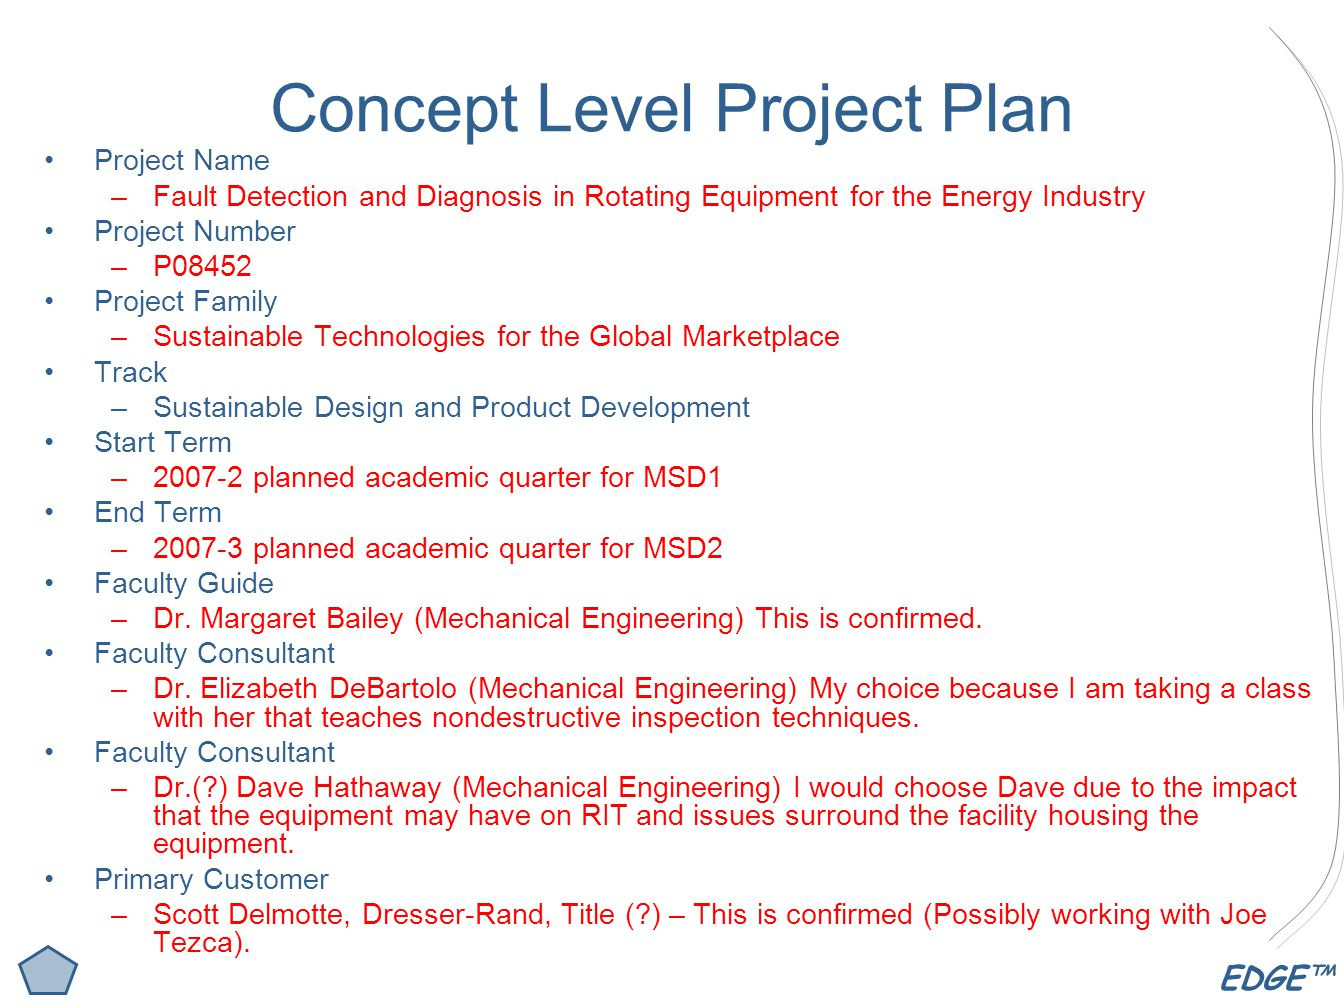 EDGE™ Concept Level Project Plan Project Name –Fault Detection and Diagnosis in Rotating Equipment for the Energy Industry Project Number –P08452 Project Family –Sustainable Technologies for the Global Marketplace Track –Sustainable Design and Product Development Start Term –2007-2 planned academic quarter for MSD1 End Term –2007-3 planned academic quarter for MSD2 Faculty Guide –Dr.